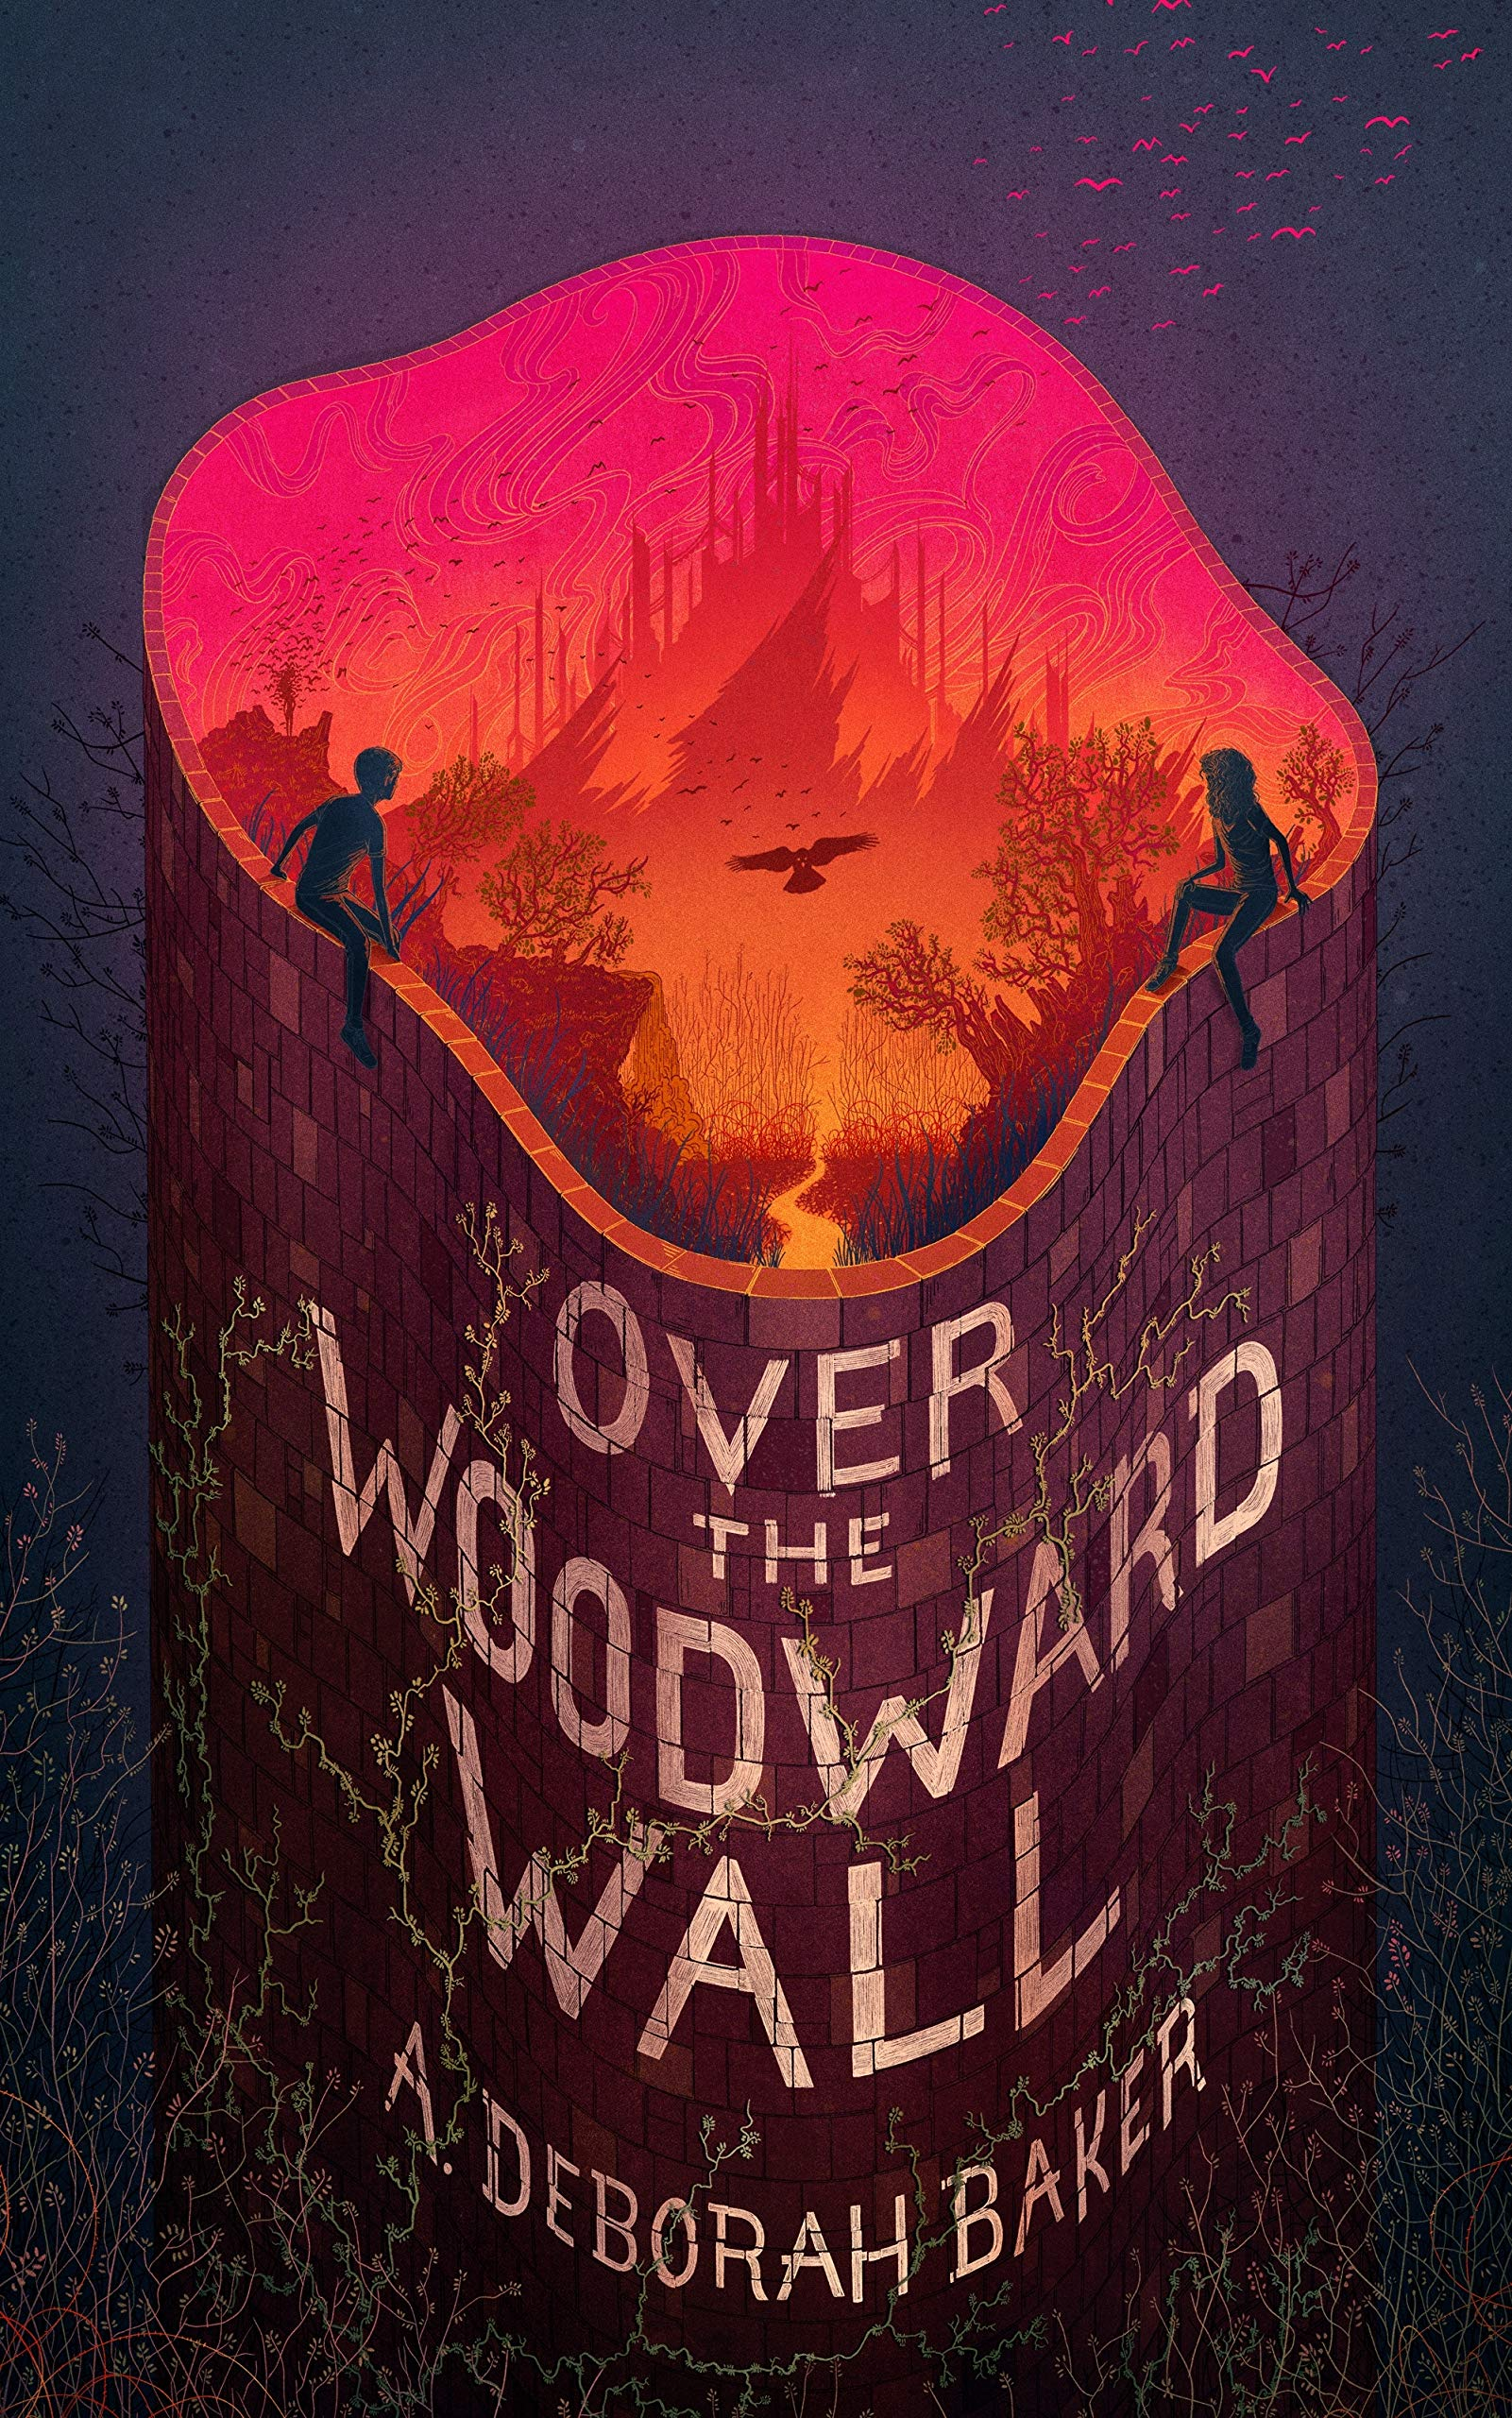 Over the Woodward Wall (The Up-and-Under, 1): Baker, A. Deborah:  9780765399274: Amazon.com: Books